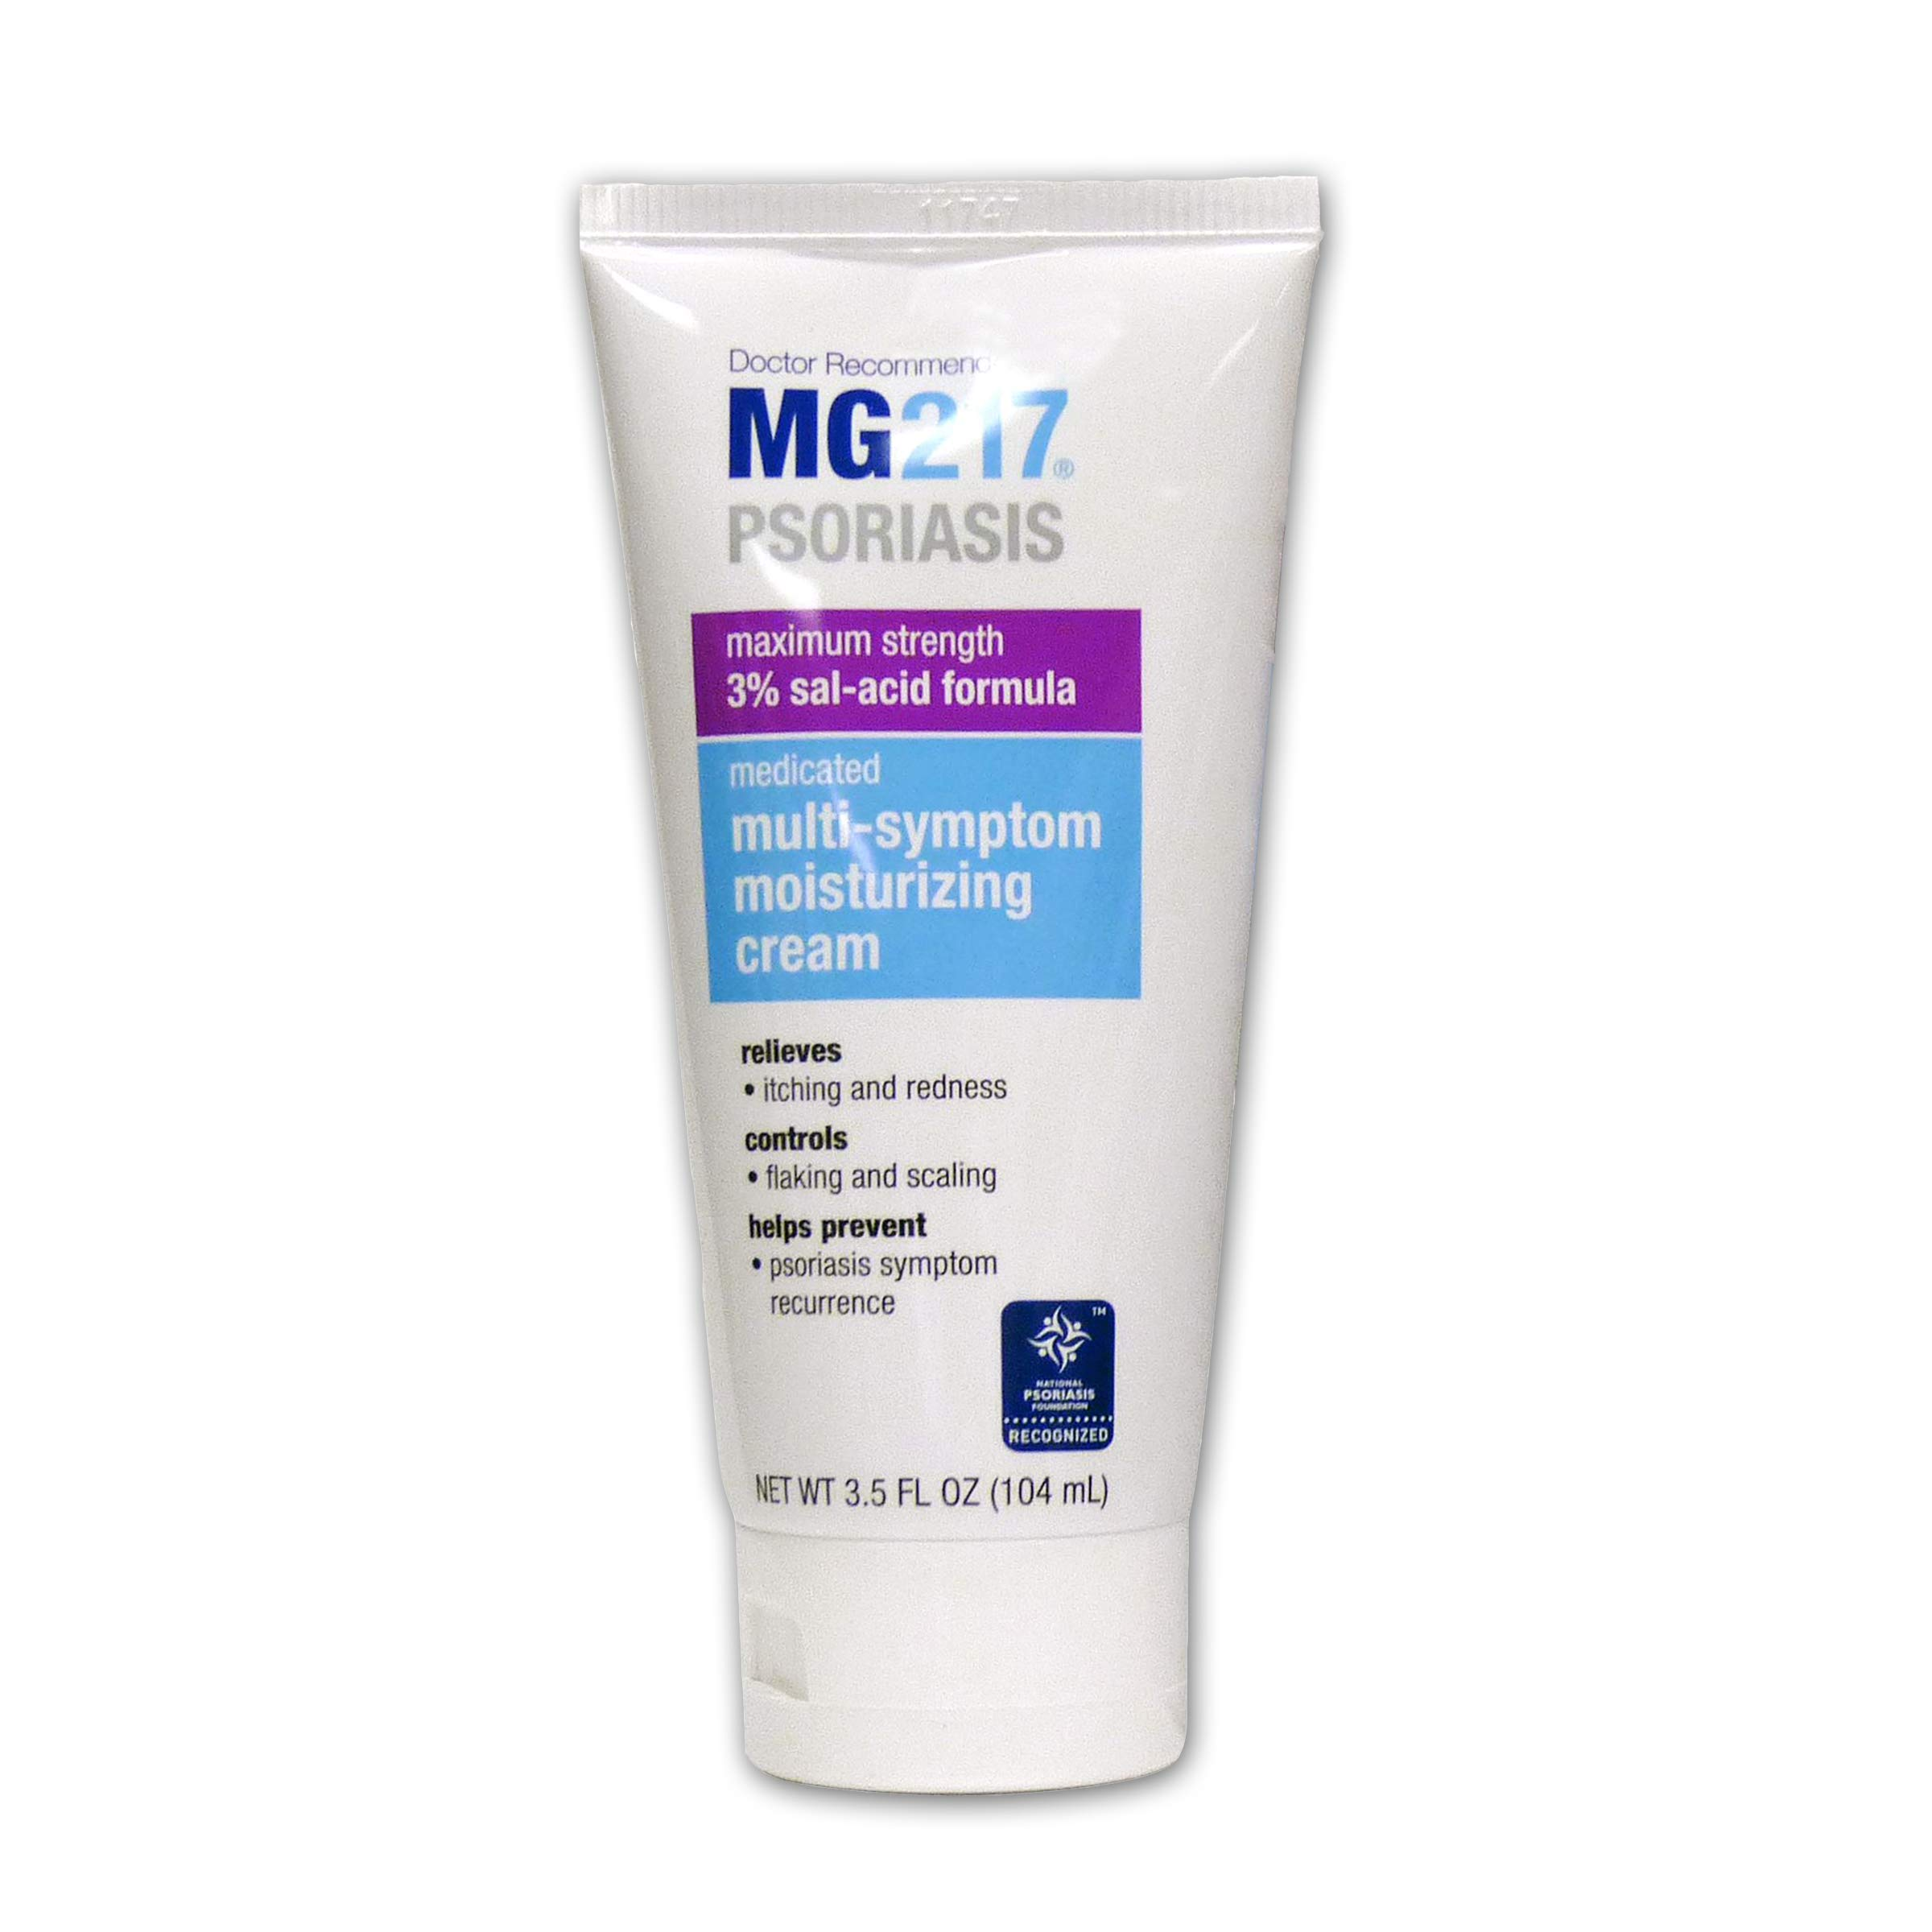 MG217 Medicated Moisturizing Psoriasis Cream With 3% Salicylic Acid - 3.5 oz Tube